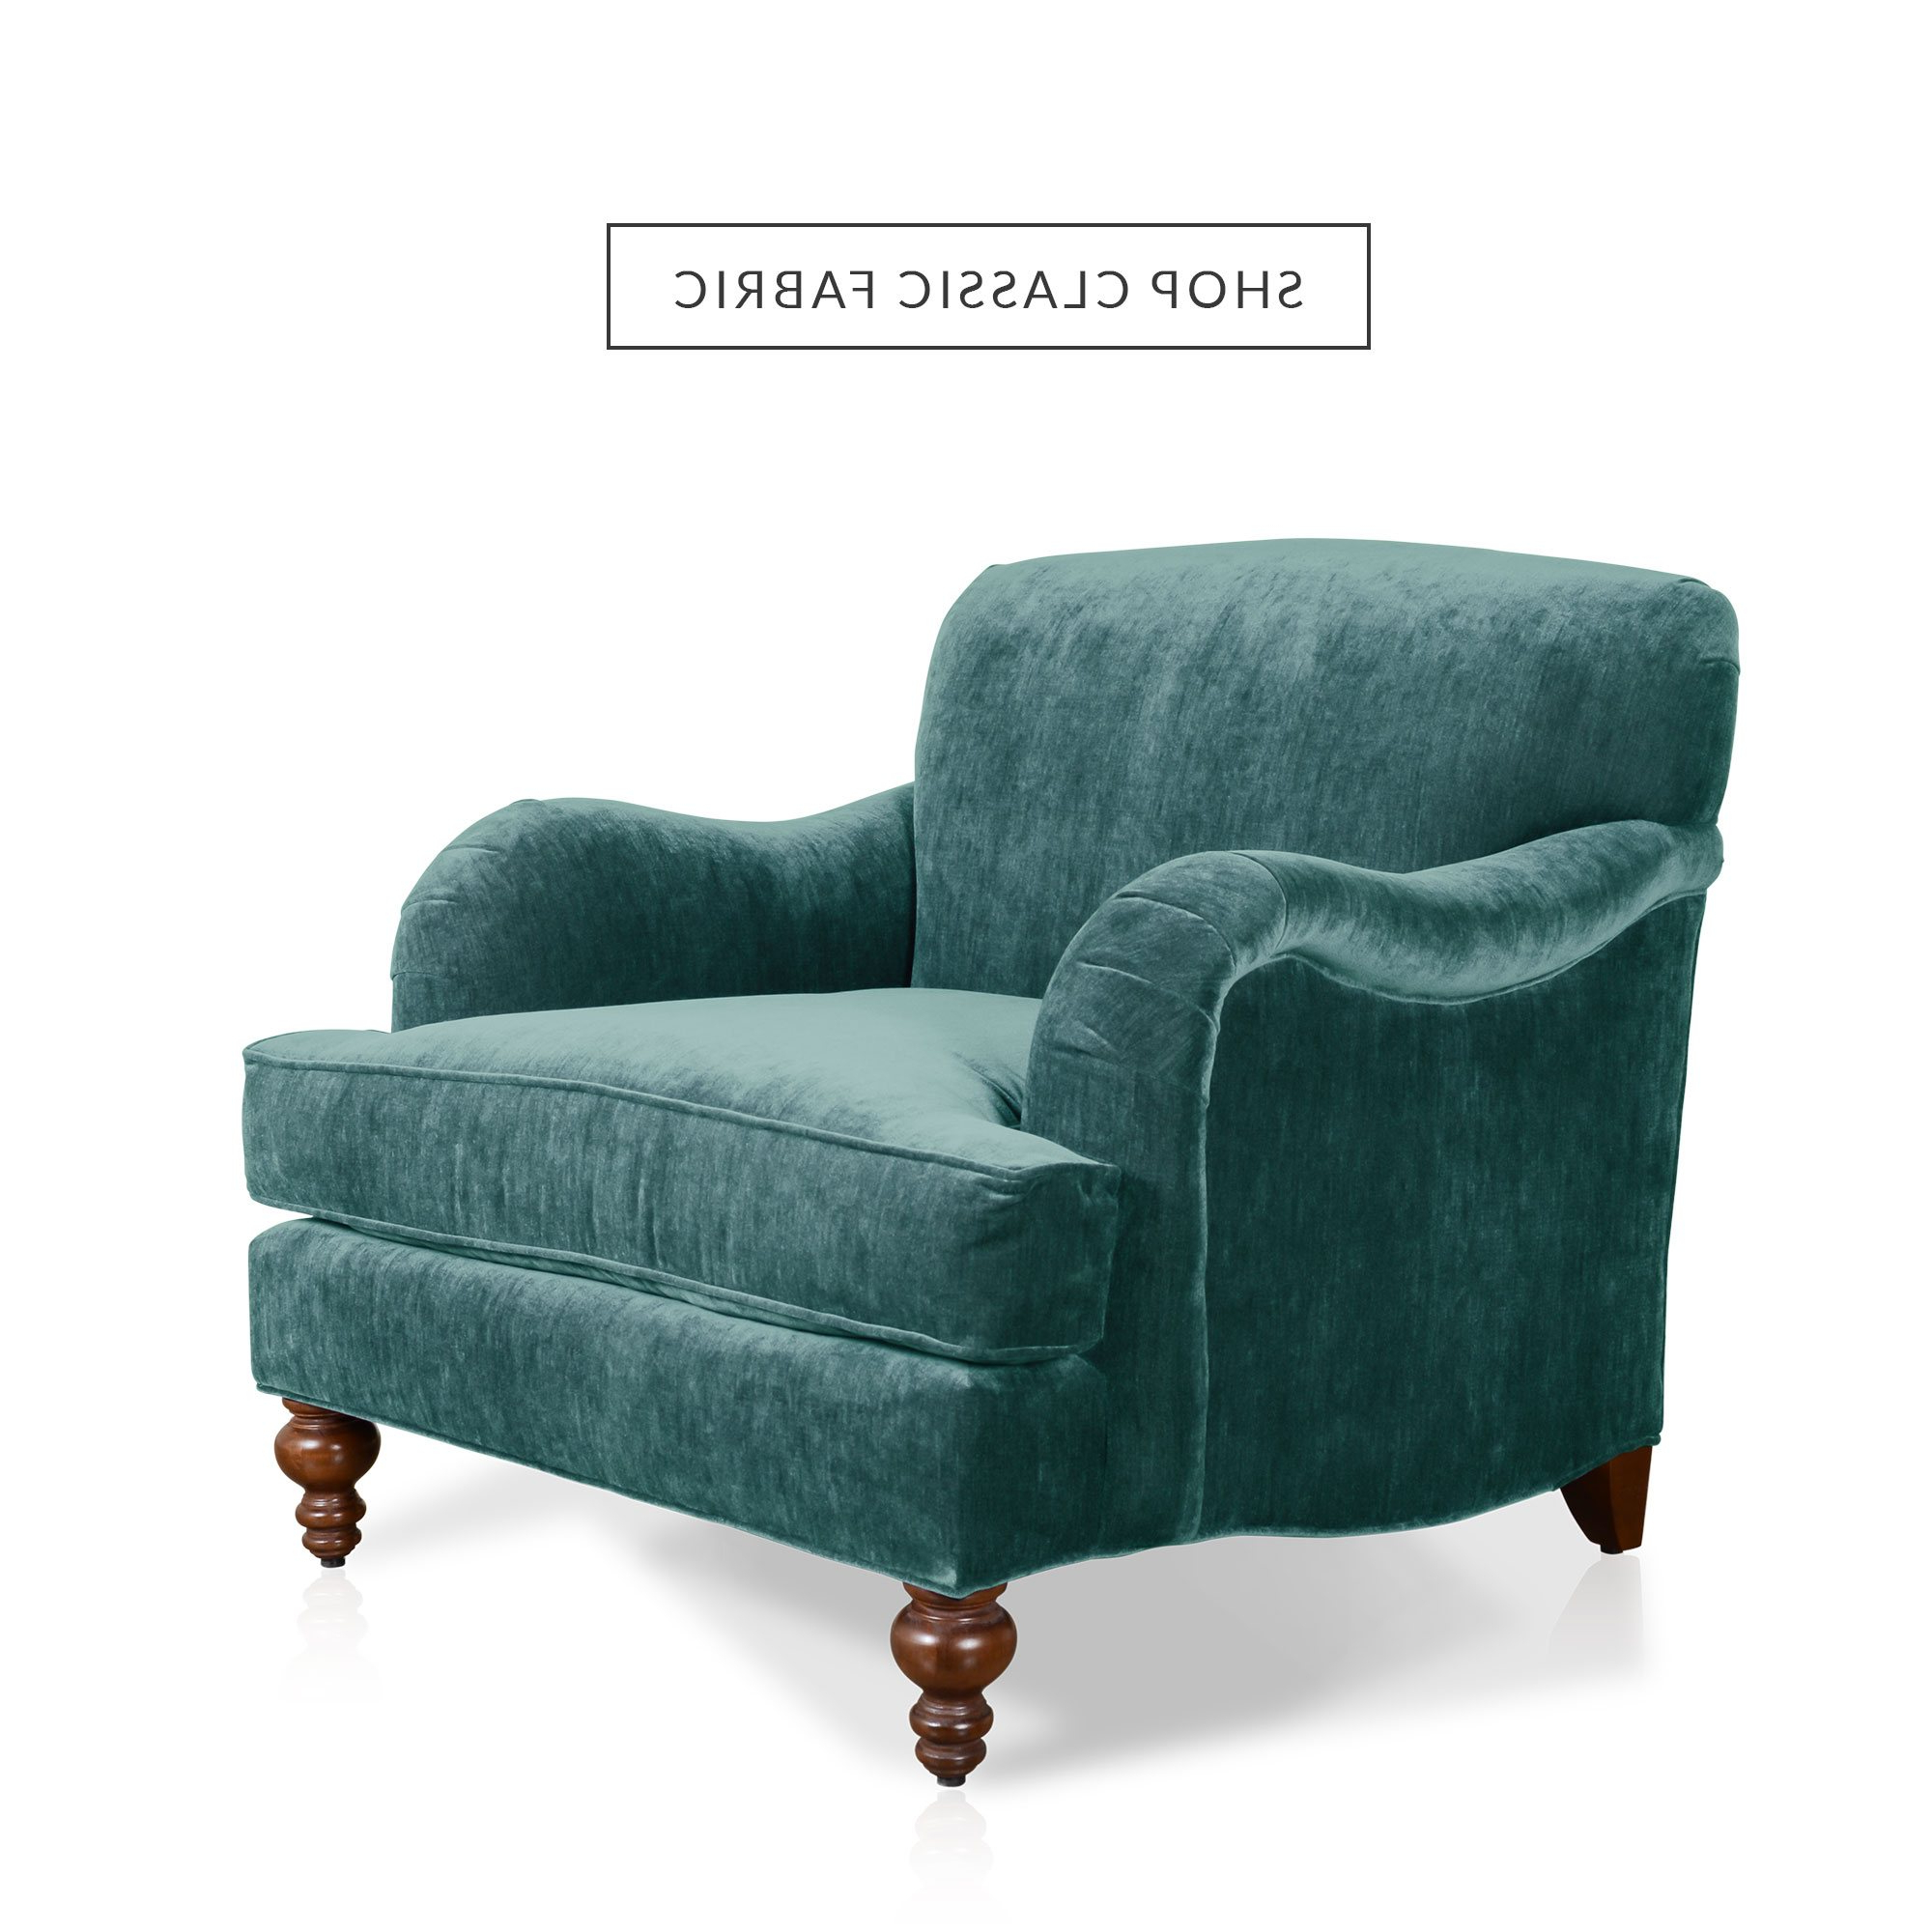 Chesterfield Sofas, Modern Furniture Made In Usa (View 4 of 20)